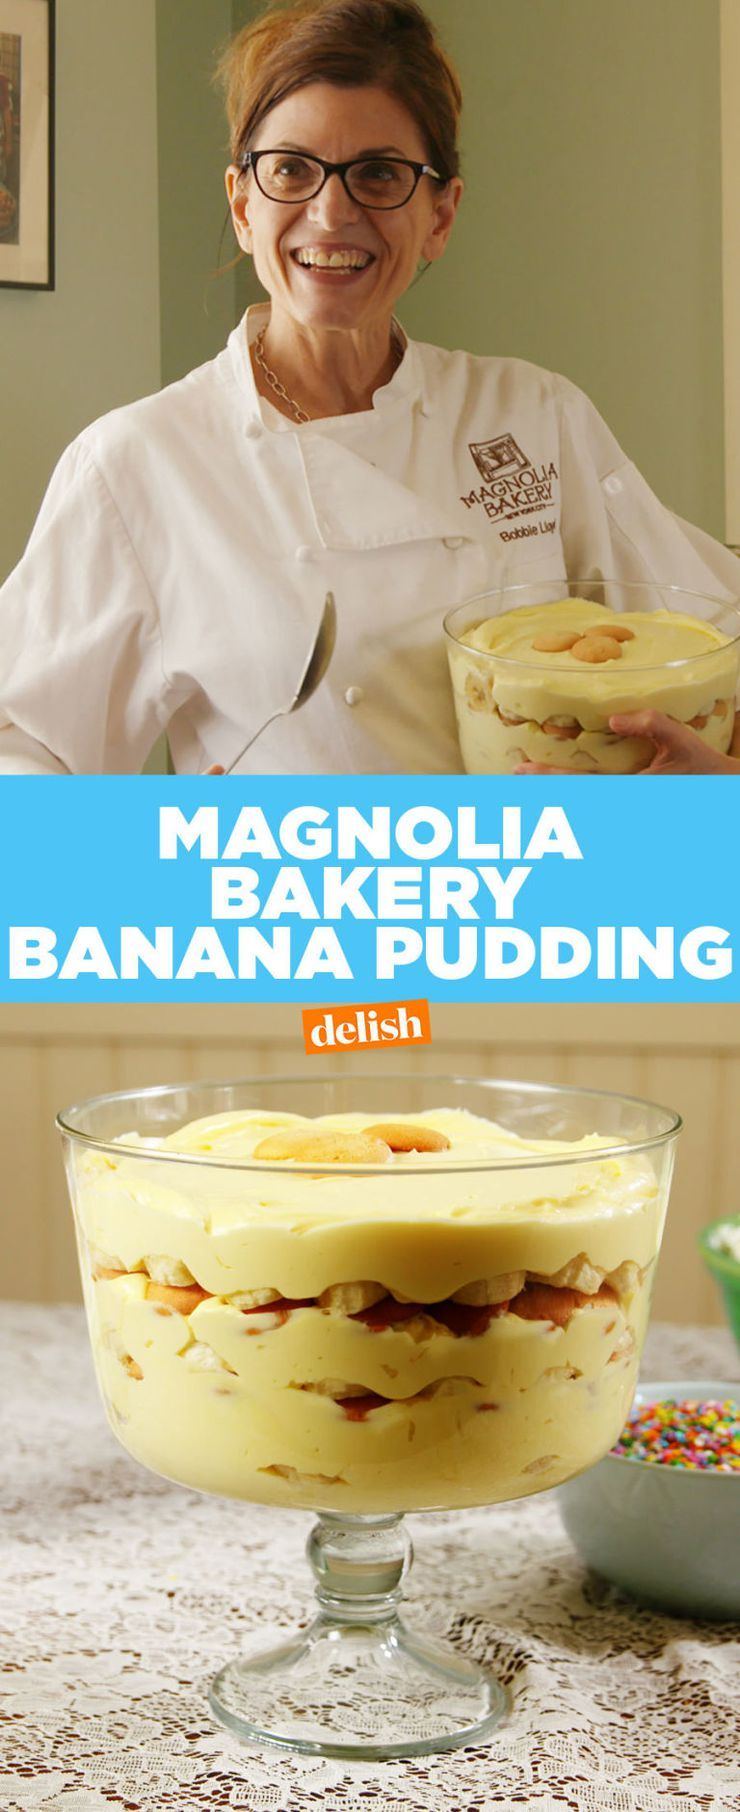 Magnolia Bakery Spills The Secrets To Its Famous Banana Pudding is part of Banana pudding - Here's exactly how it's made